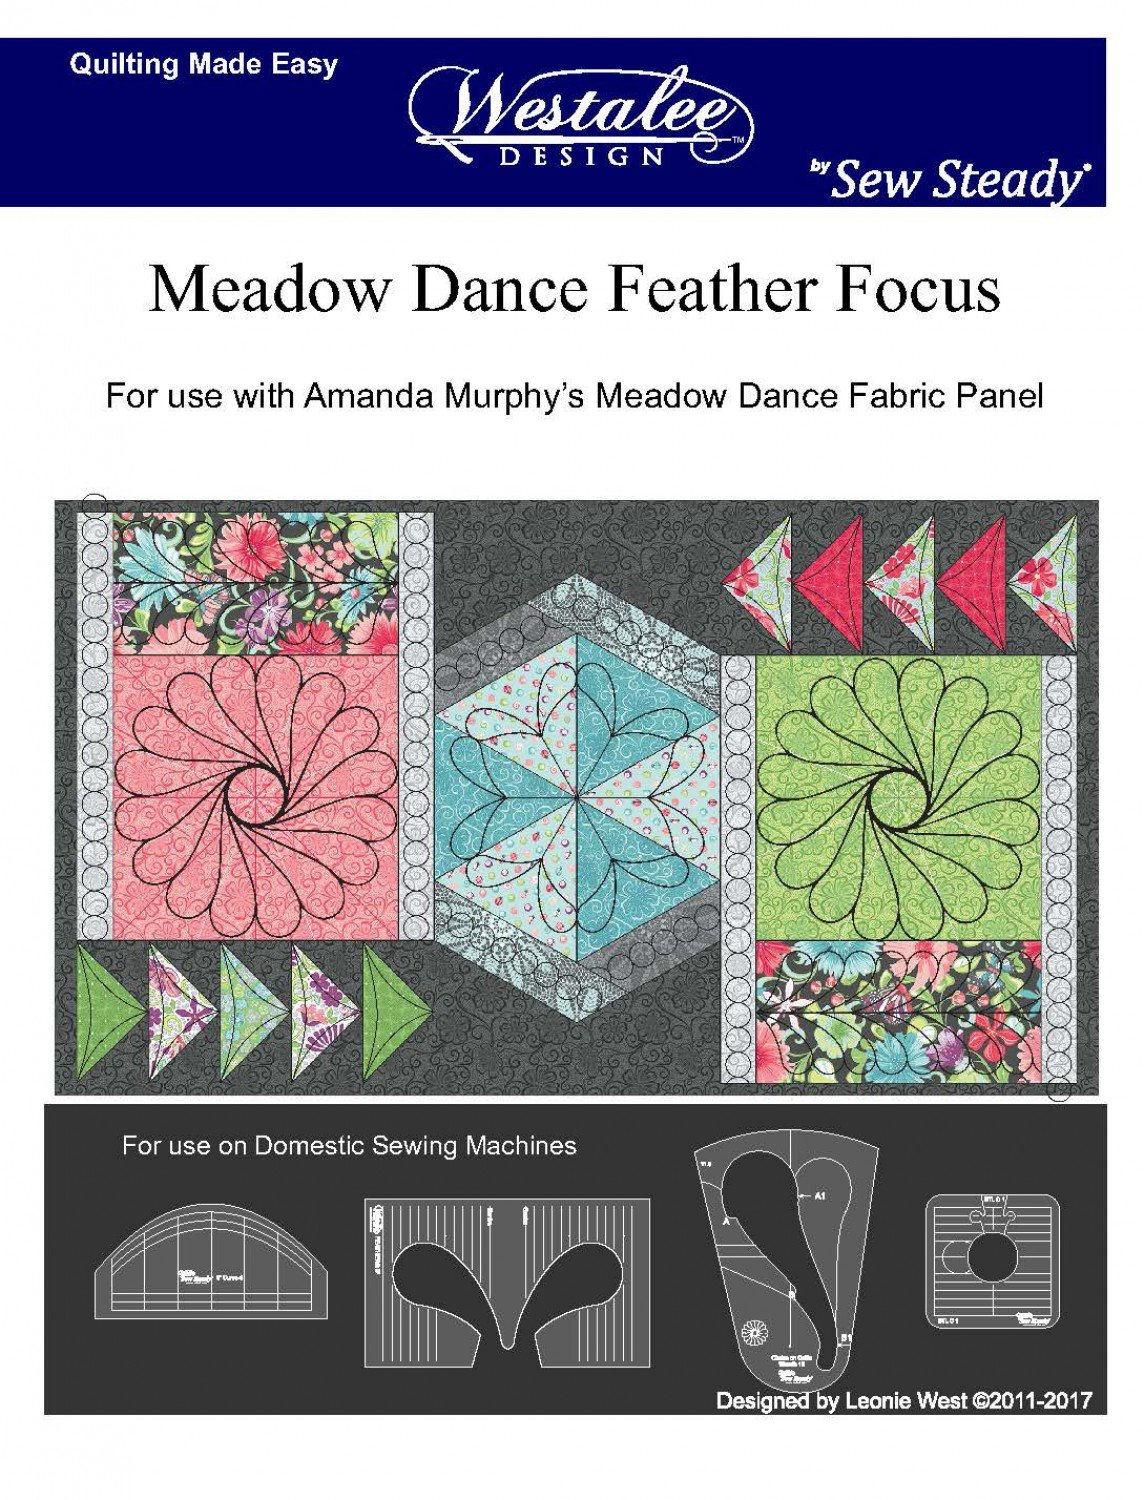 Meadow Dance Feather Focus by Westalee Designs - Template Set